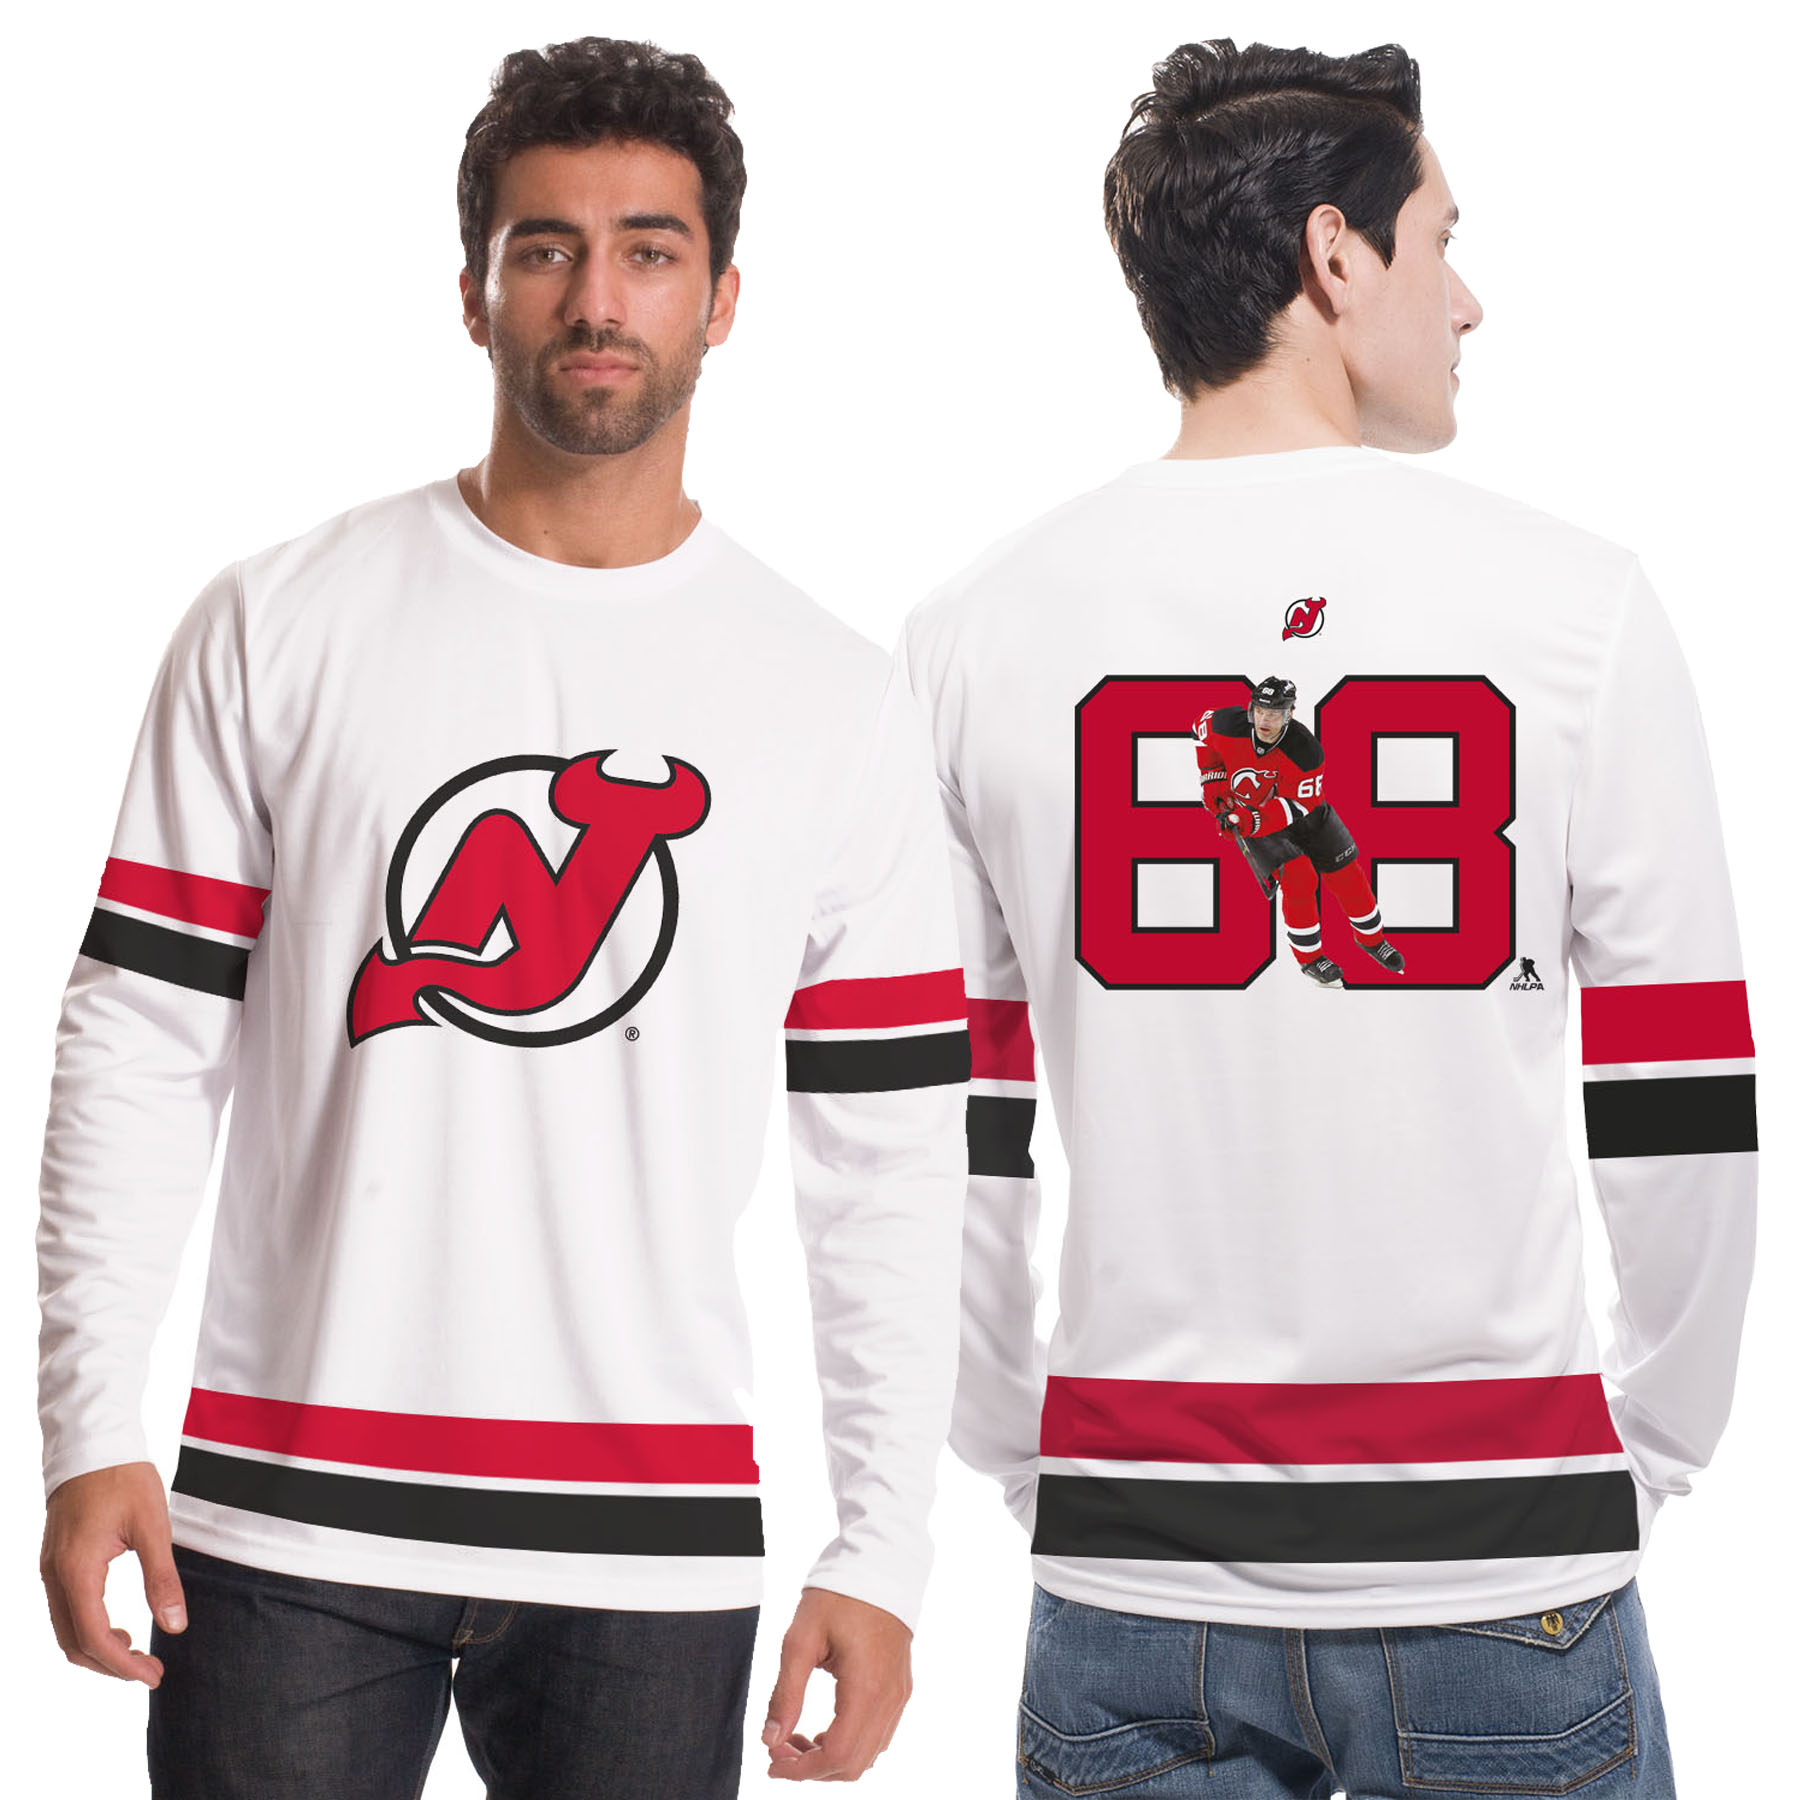 New Jersey Devils NHL Scrimmage Supporters Top - Jaromir Jagr